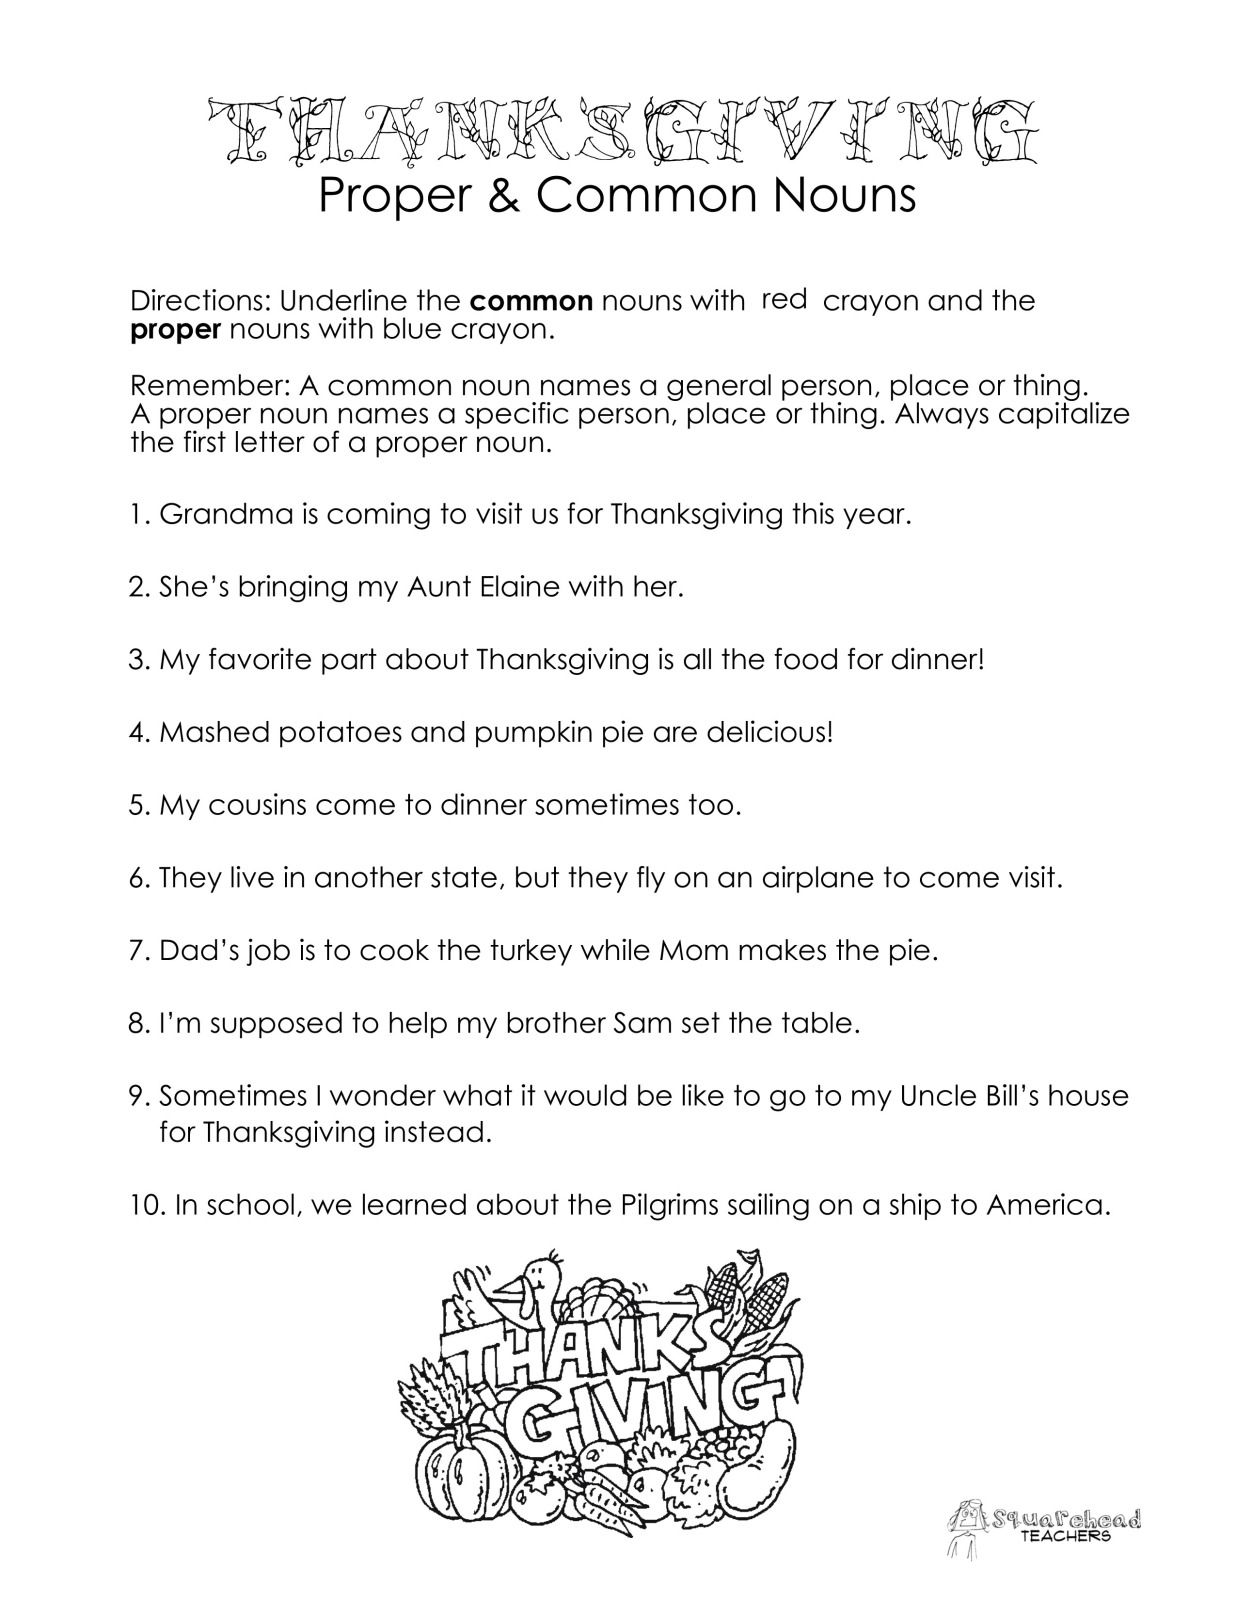 medium resolution of Free Collective Nouns Printable Worksheets   Printable Worksheets and  Activities for Teachers